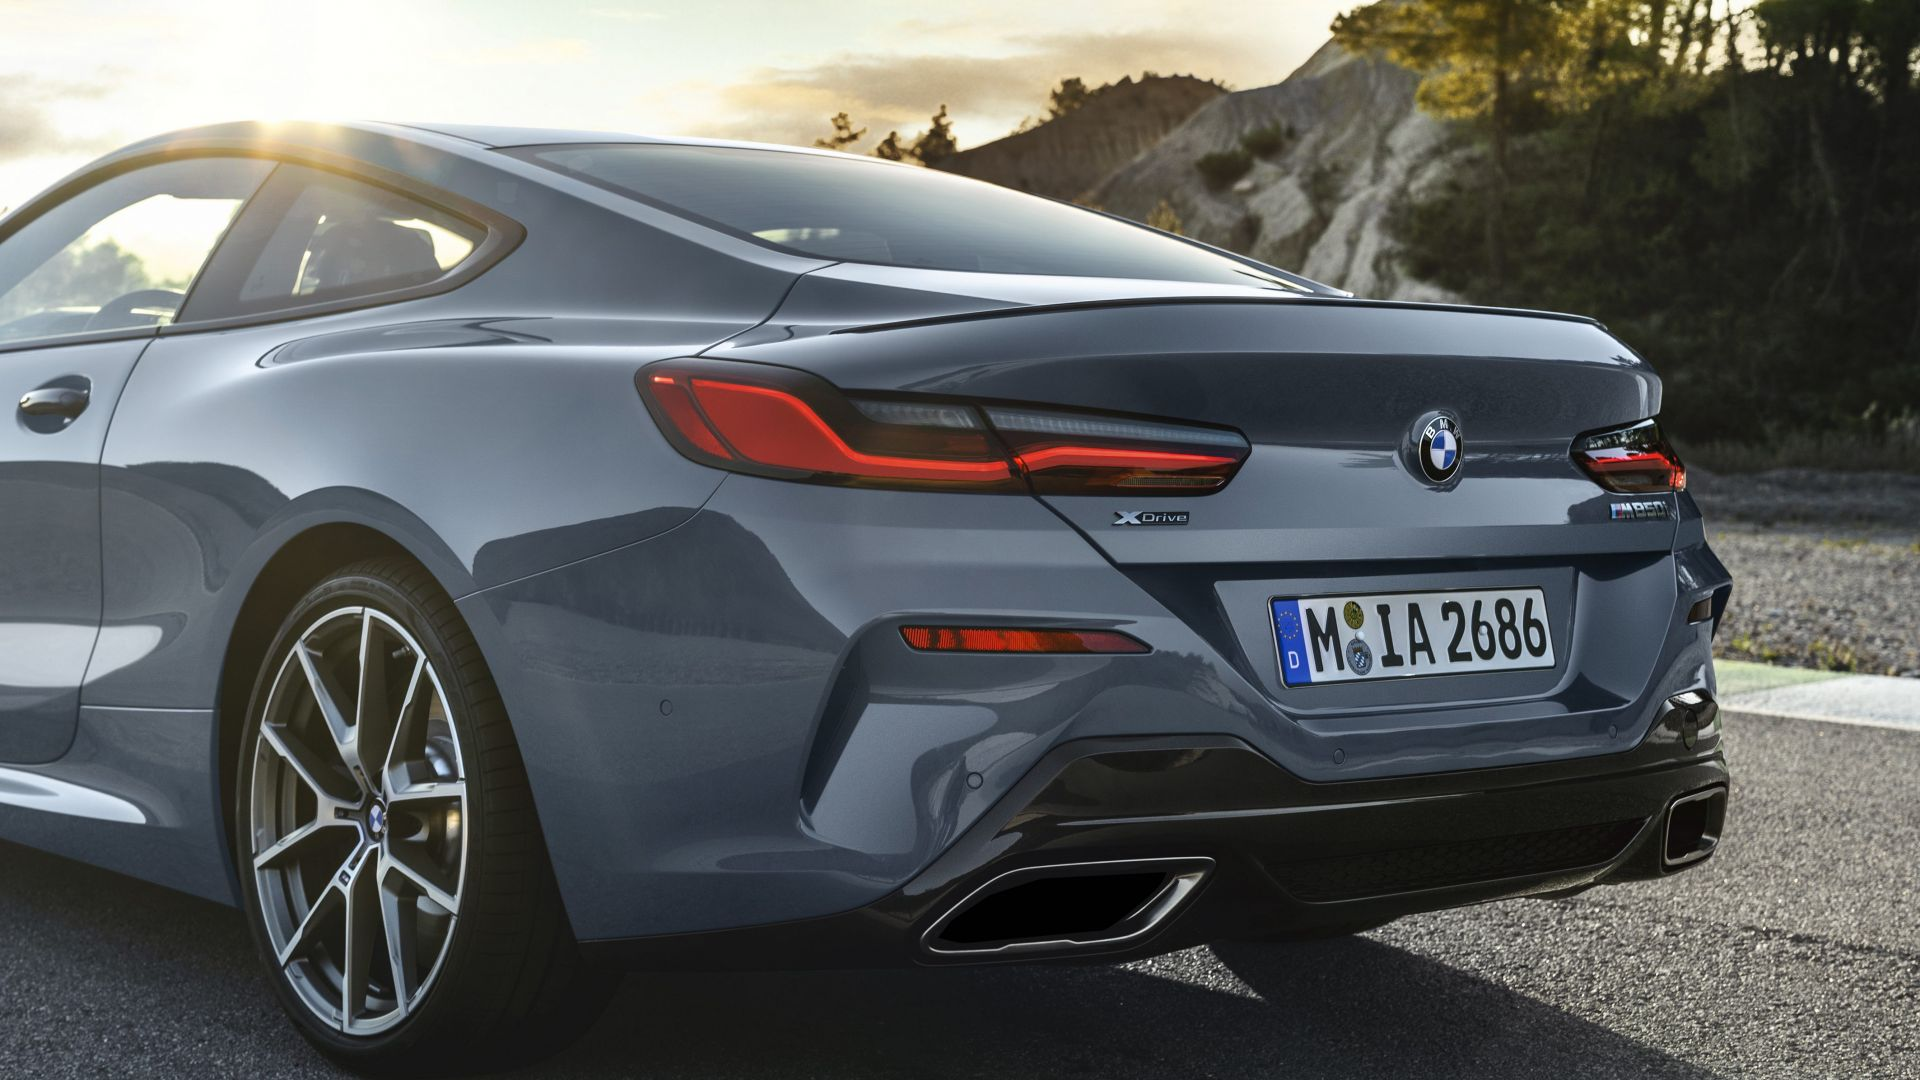 Wallpaper BMW 8-Series Coupe, 2019 Cars, 4K, Cars & Bikes